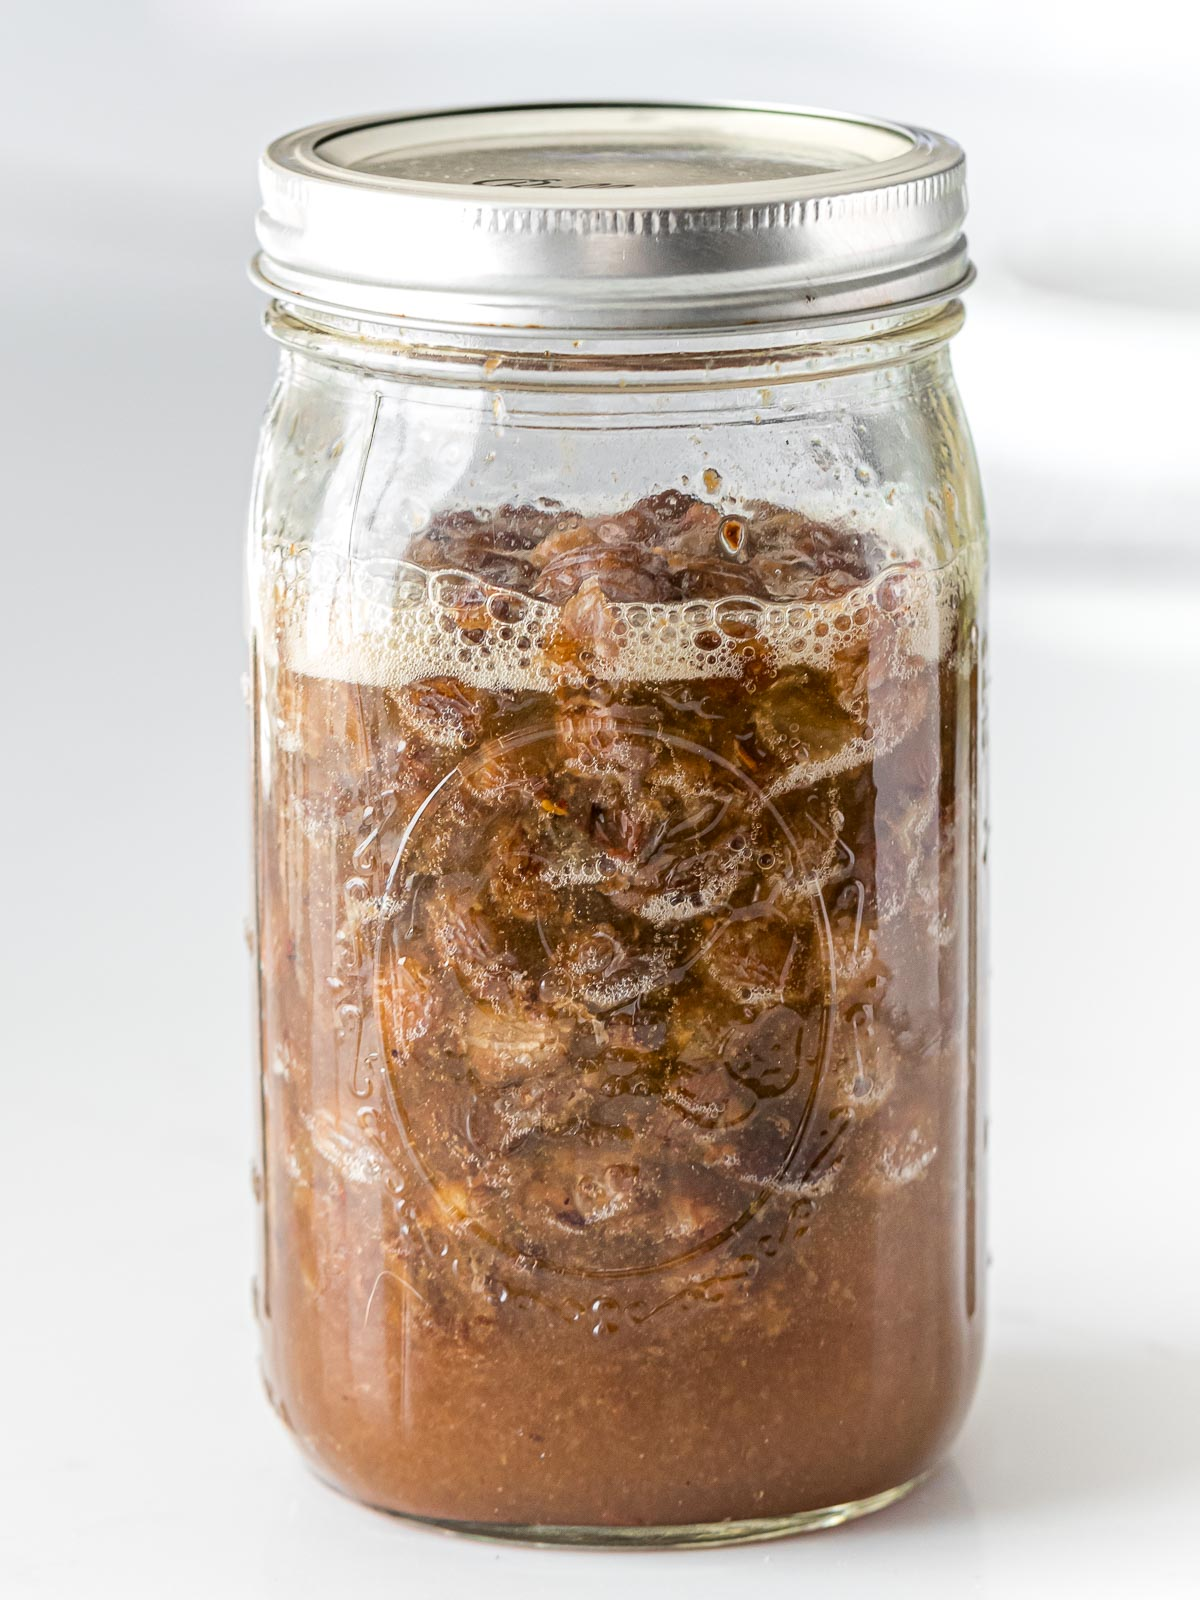 raisin yeast water with bubbles and foam in a glass mason jar with a lid